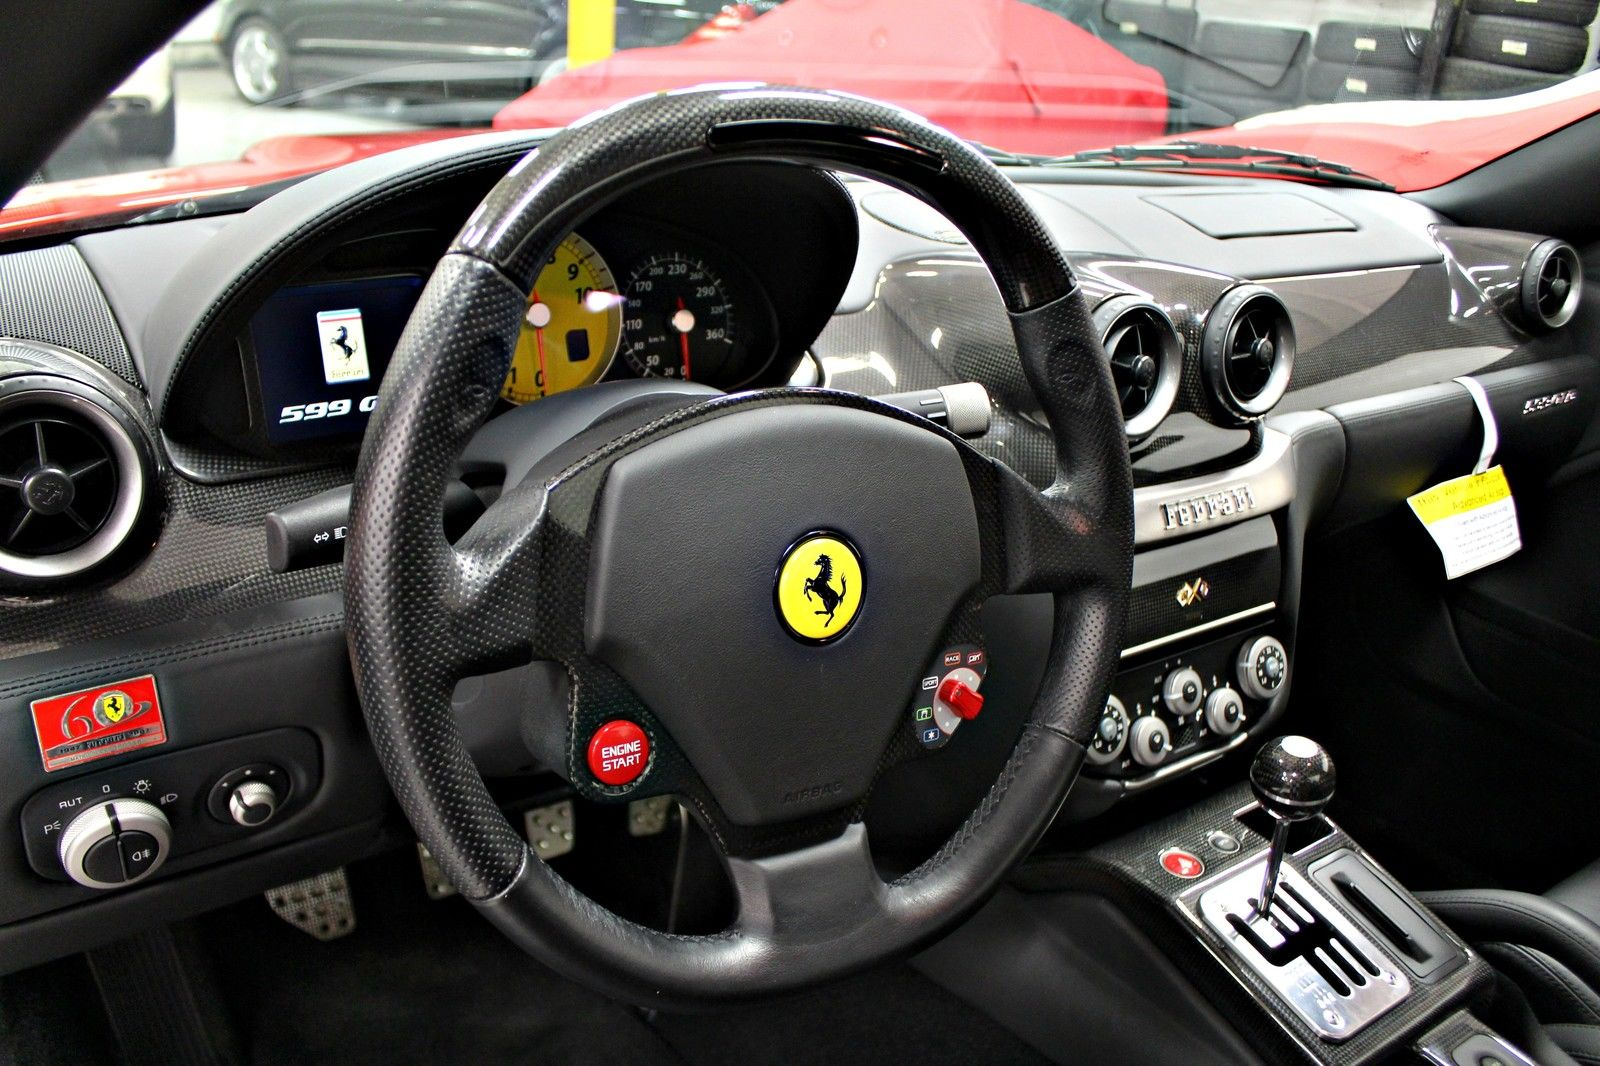 rare manual ferrari 599 gtb arrives on ebay carscoops. Black Bedroom Furniture Sets. Home Design Ideas